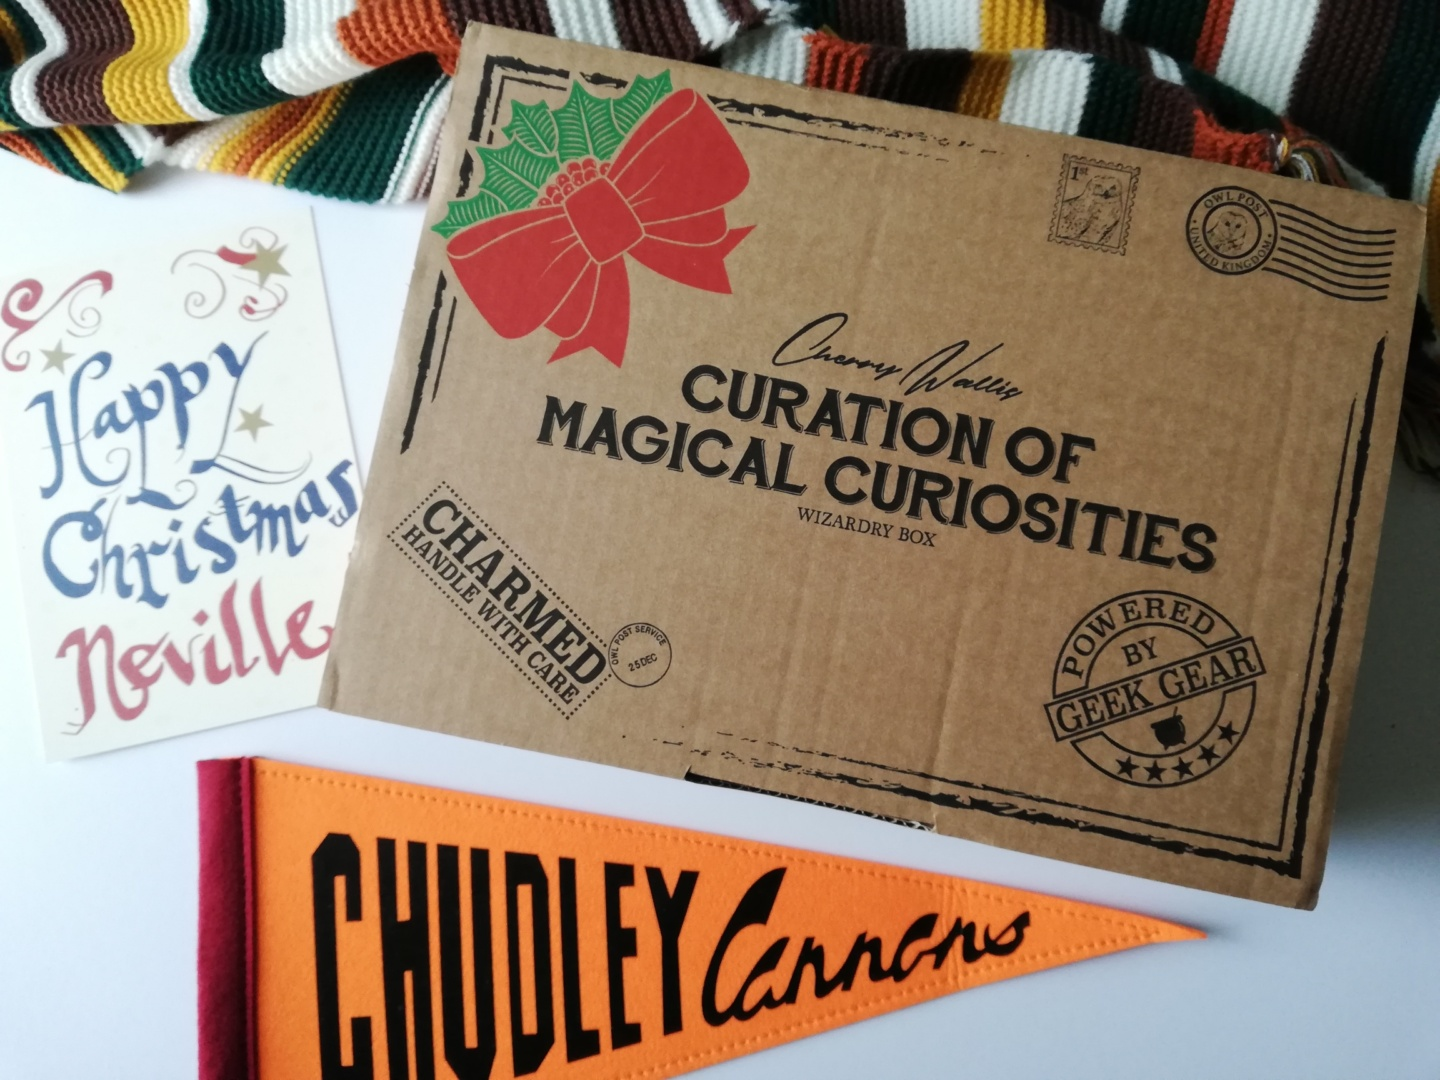 The Curation of Magical Curiosities Box: Christmas Edition